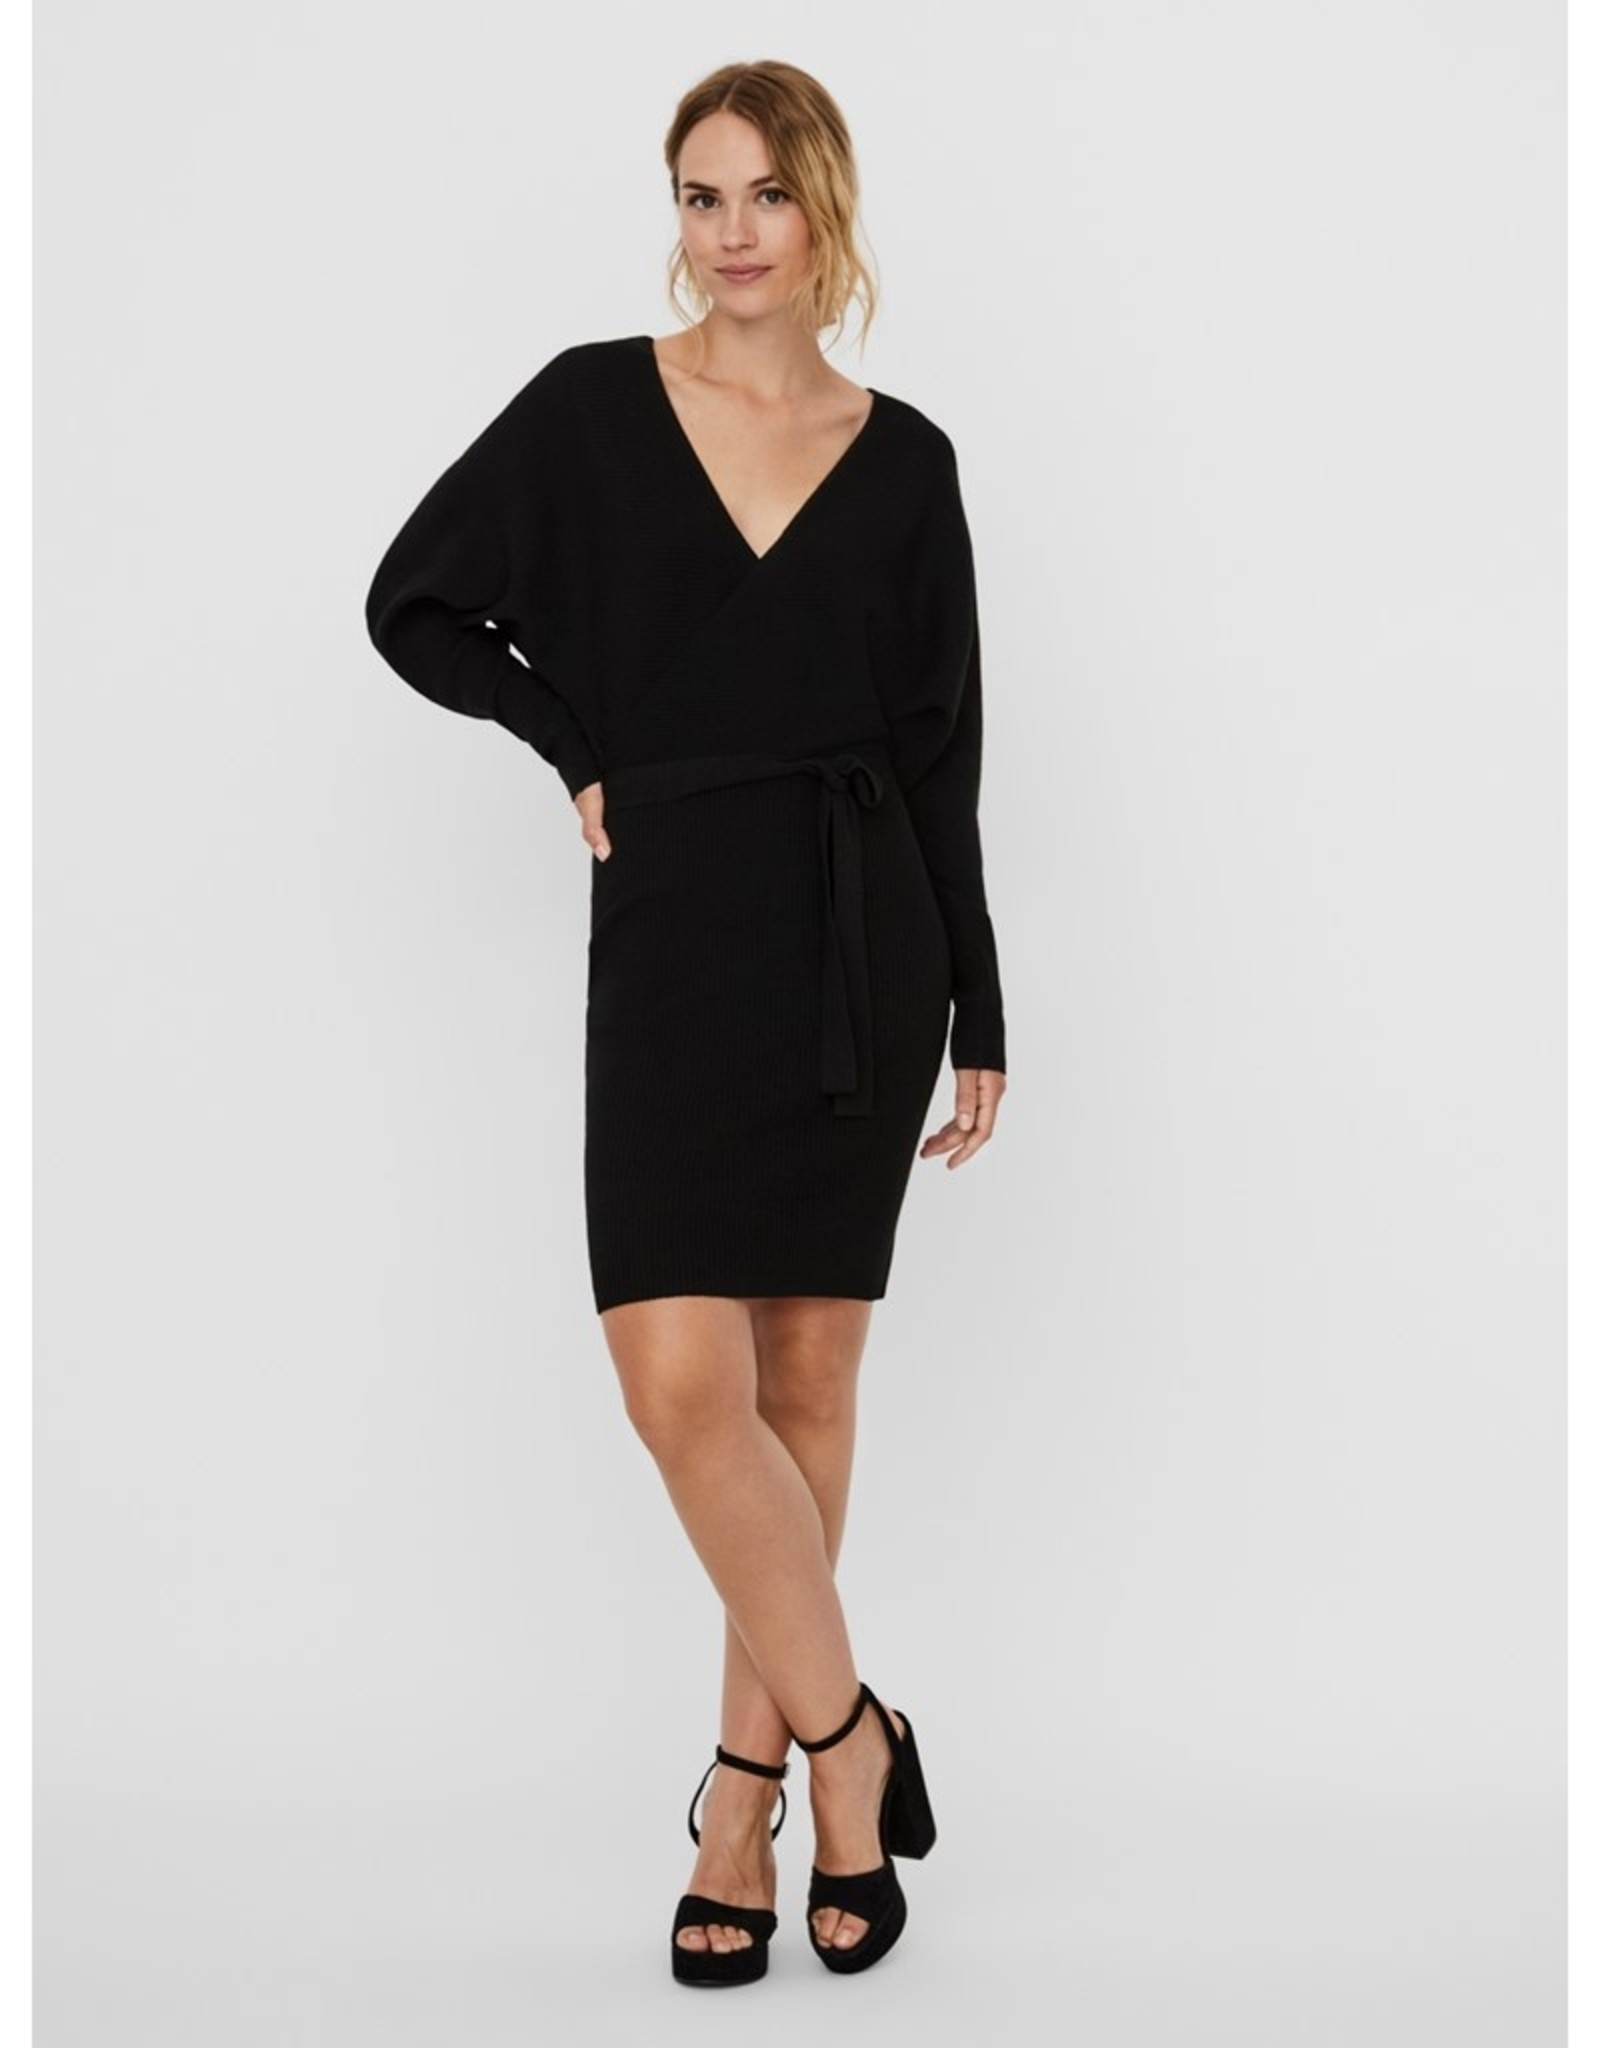 Vero Moda Rem V-Neck Dress